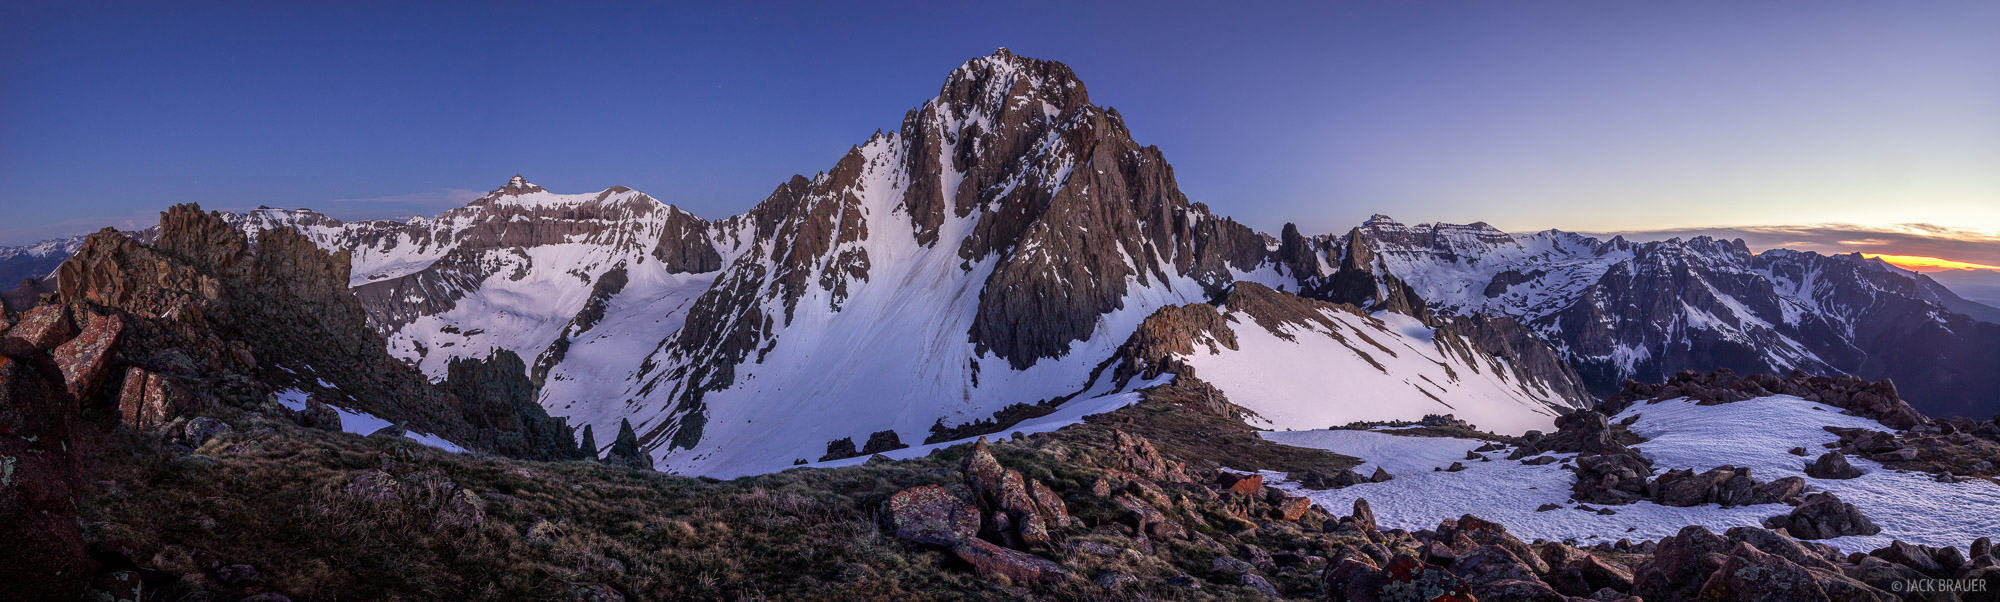 Mount Sneffels (14,150 ft.) towering over its surroundings at dusk in early June.